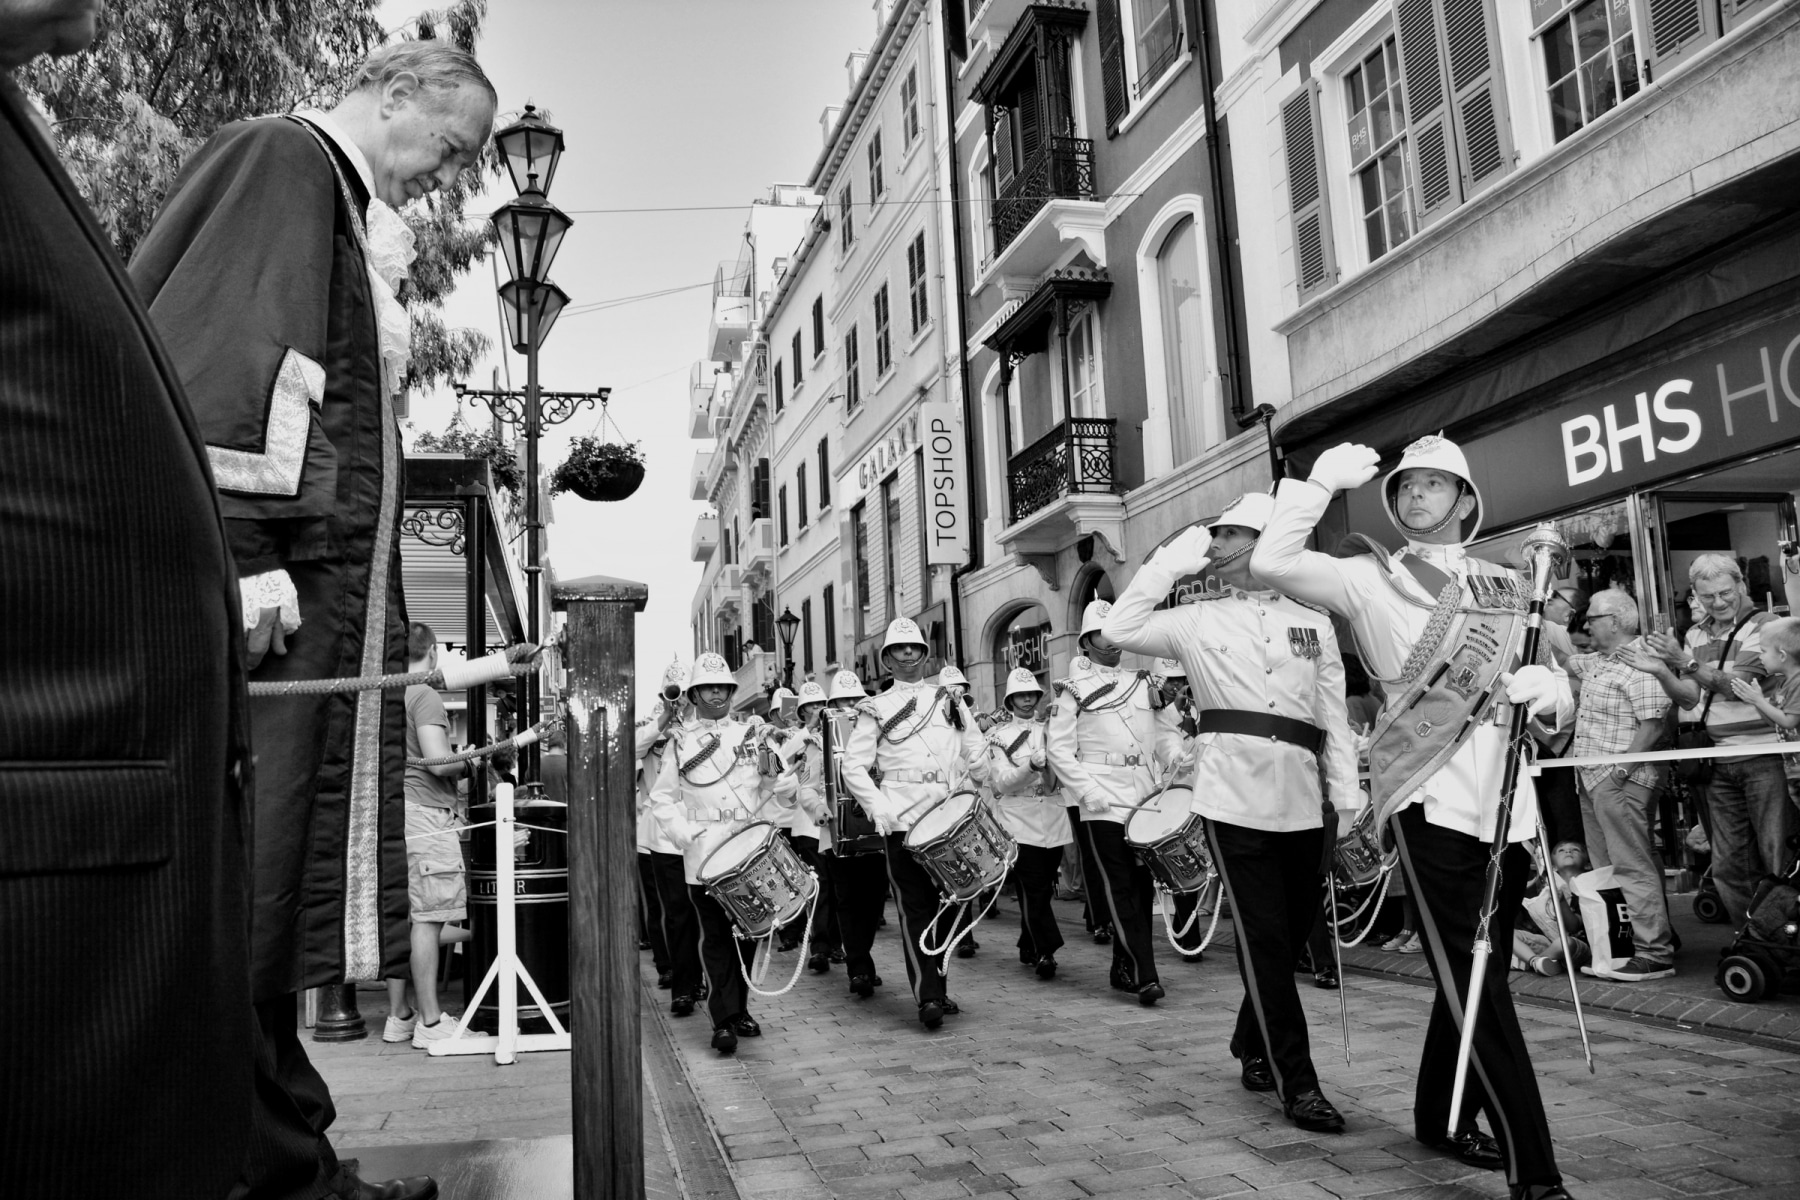 regiment-freedom-of-city-0181-bw_15436772051_o